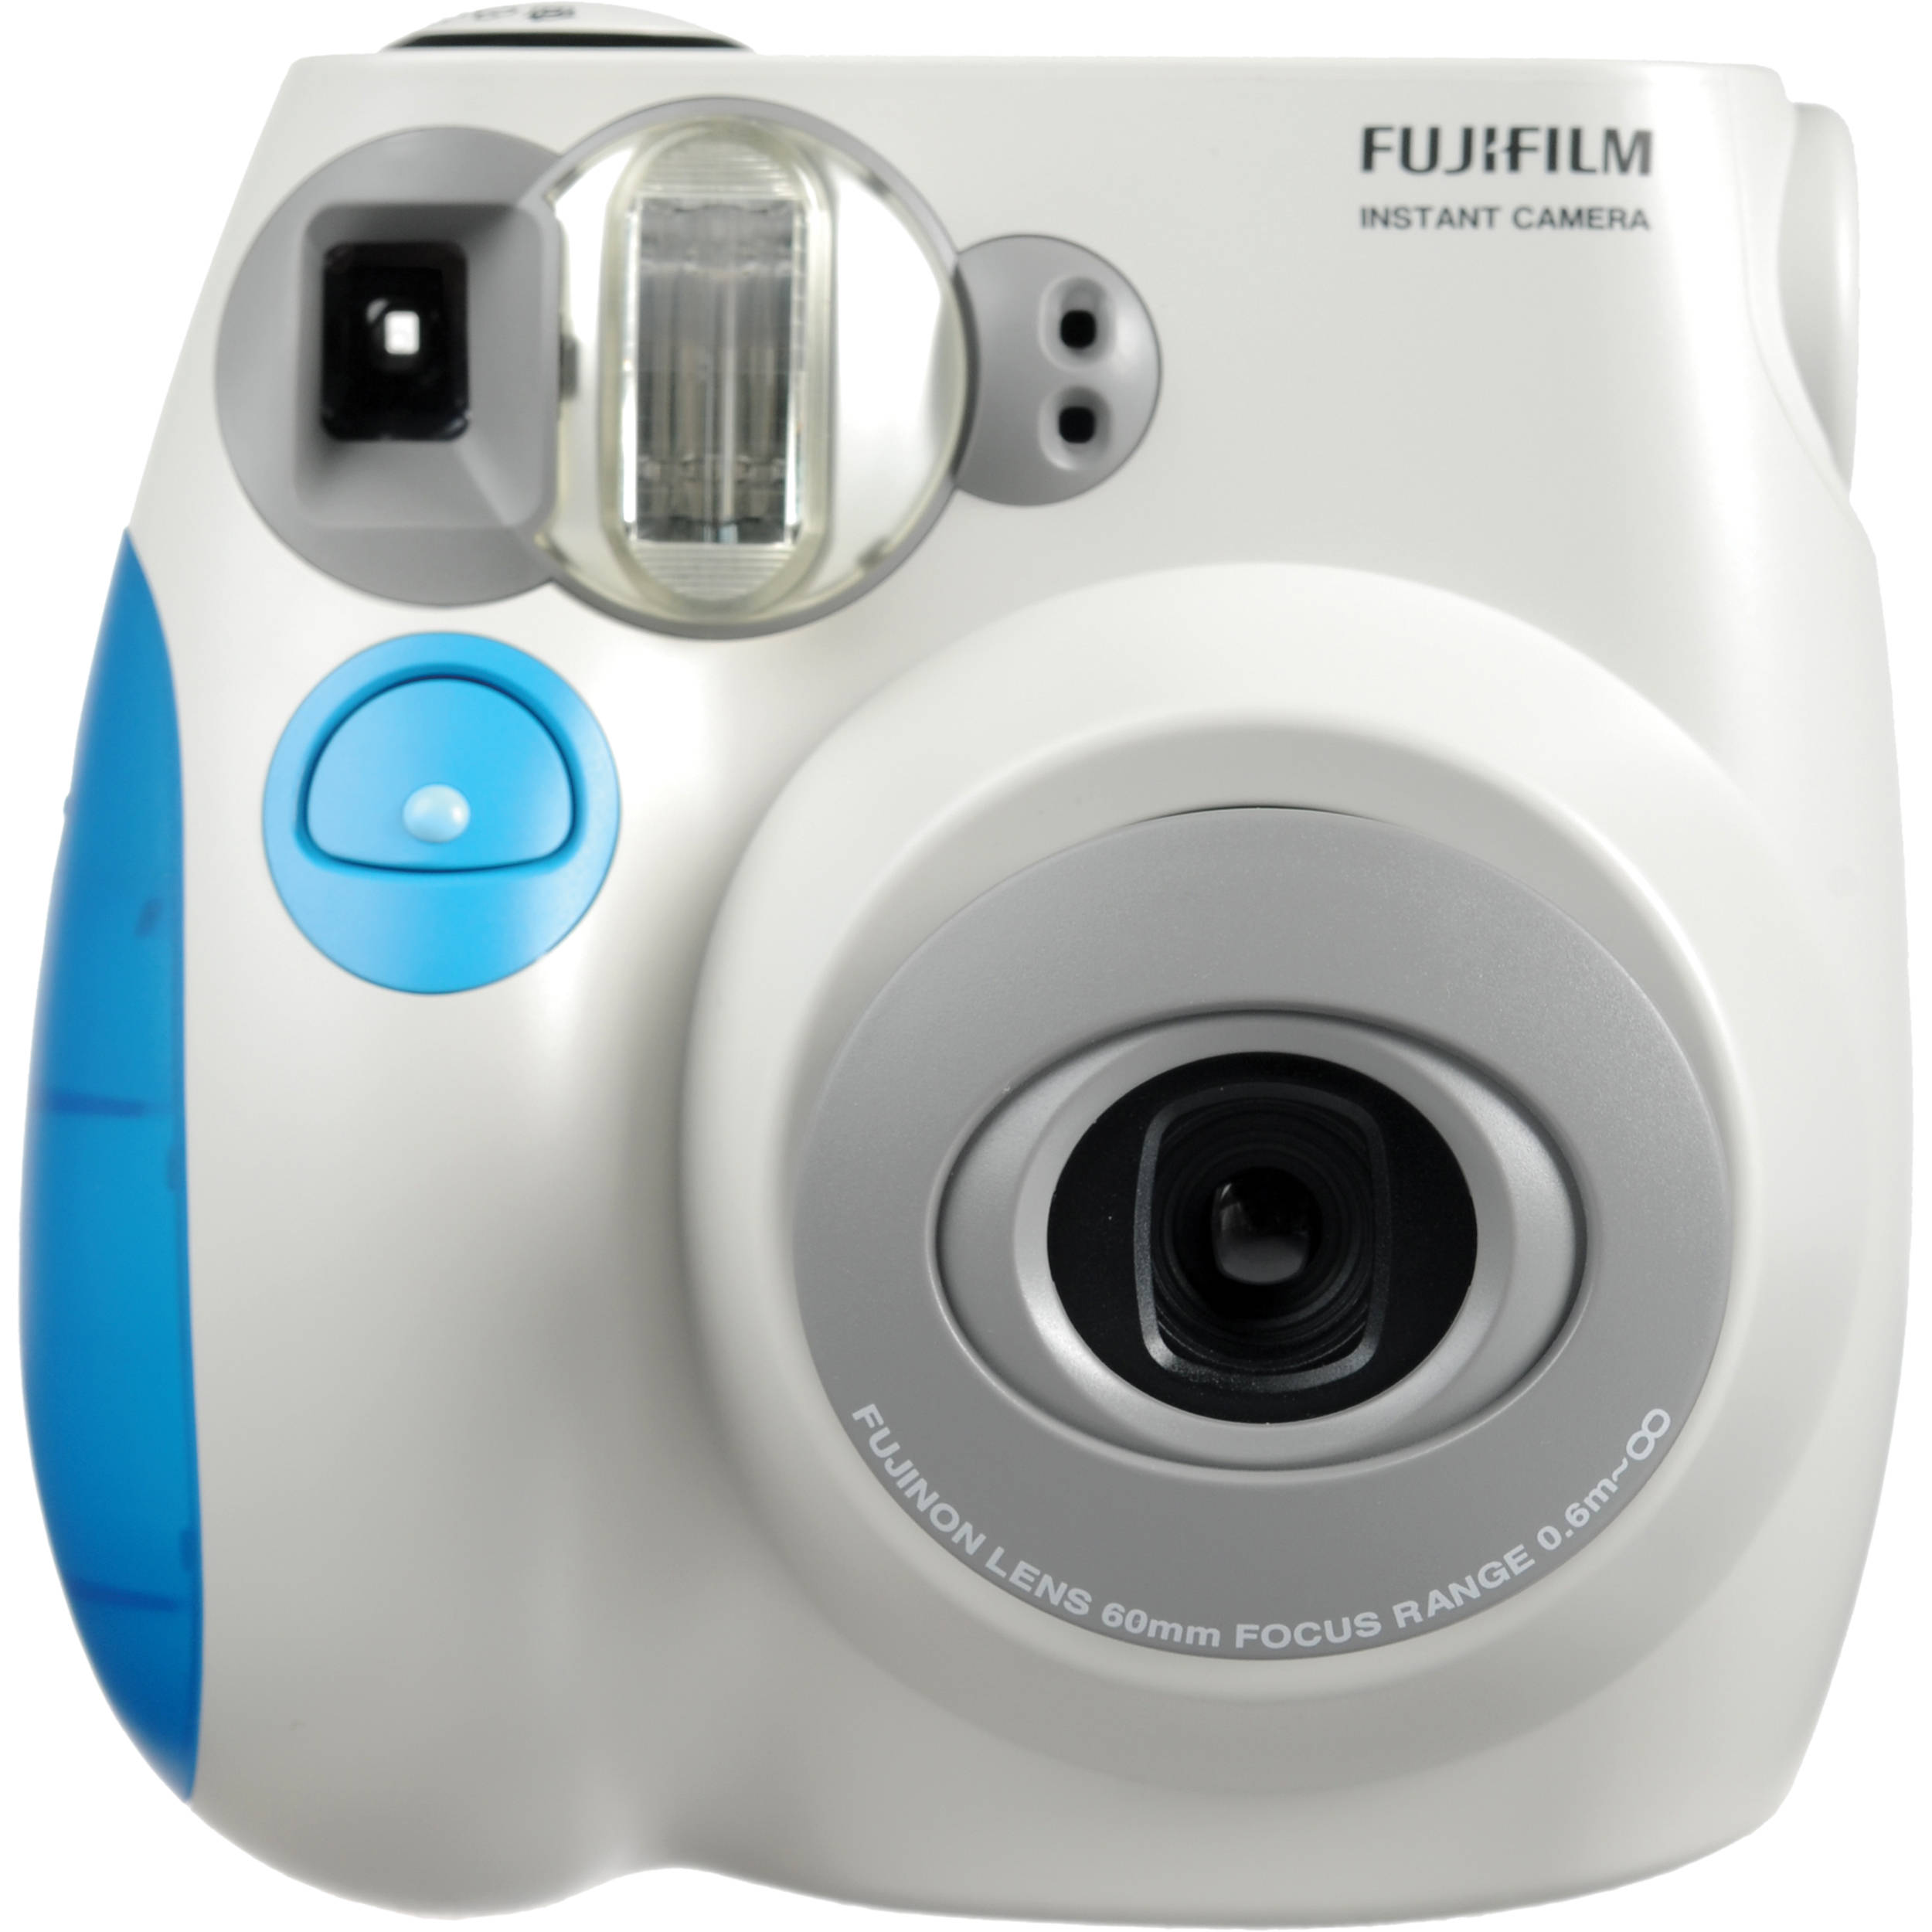 Fujifilm instax mini 7S Instant Film Camera (Blue) B&H Photo